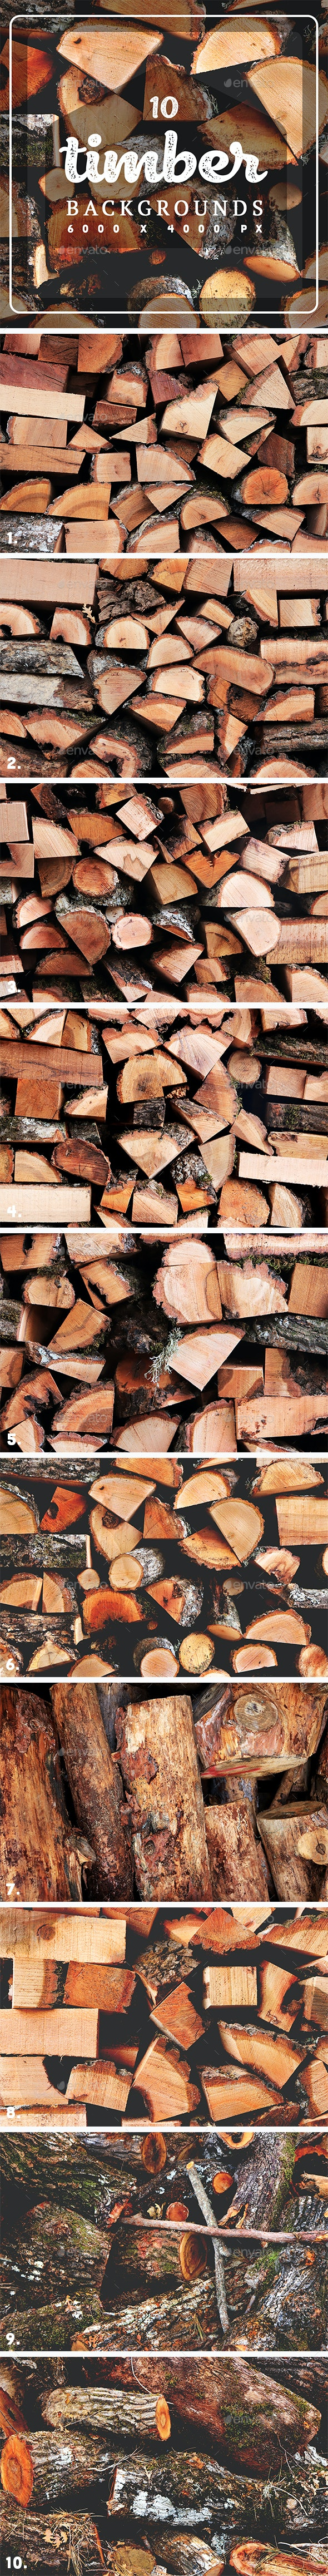 10 Timber Backgrounds - Backgrounds Graphics